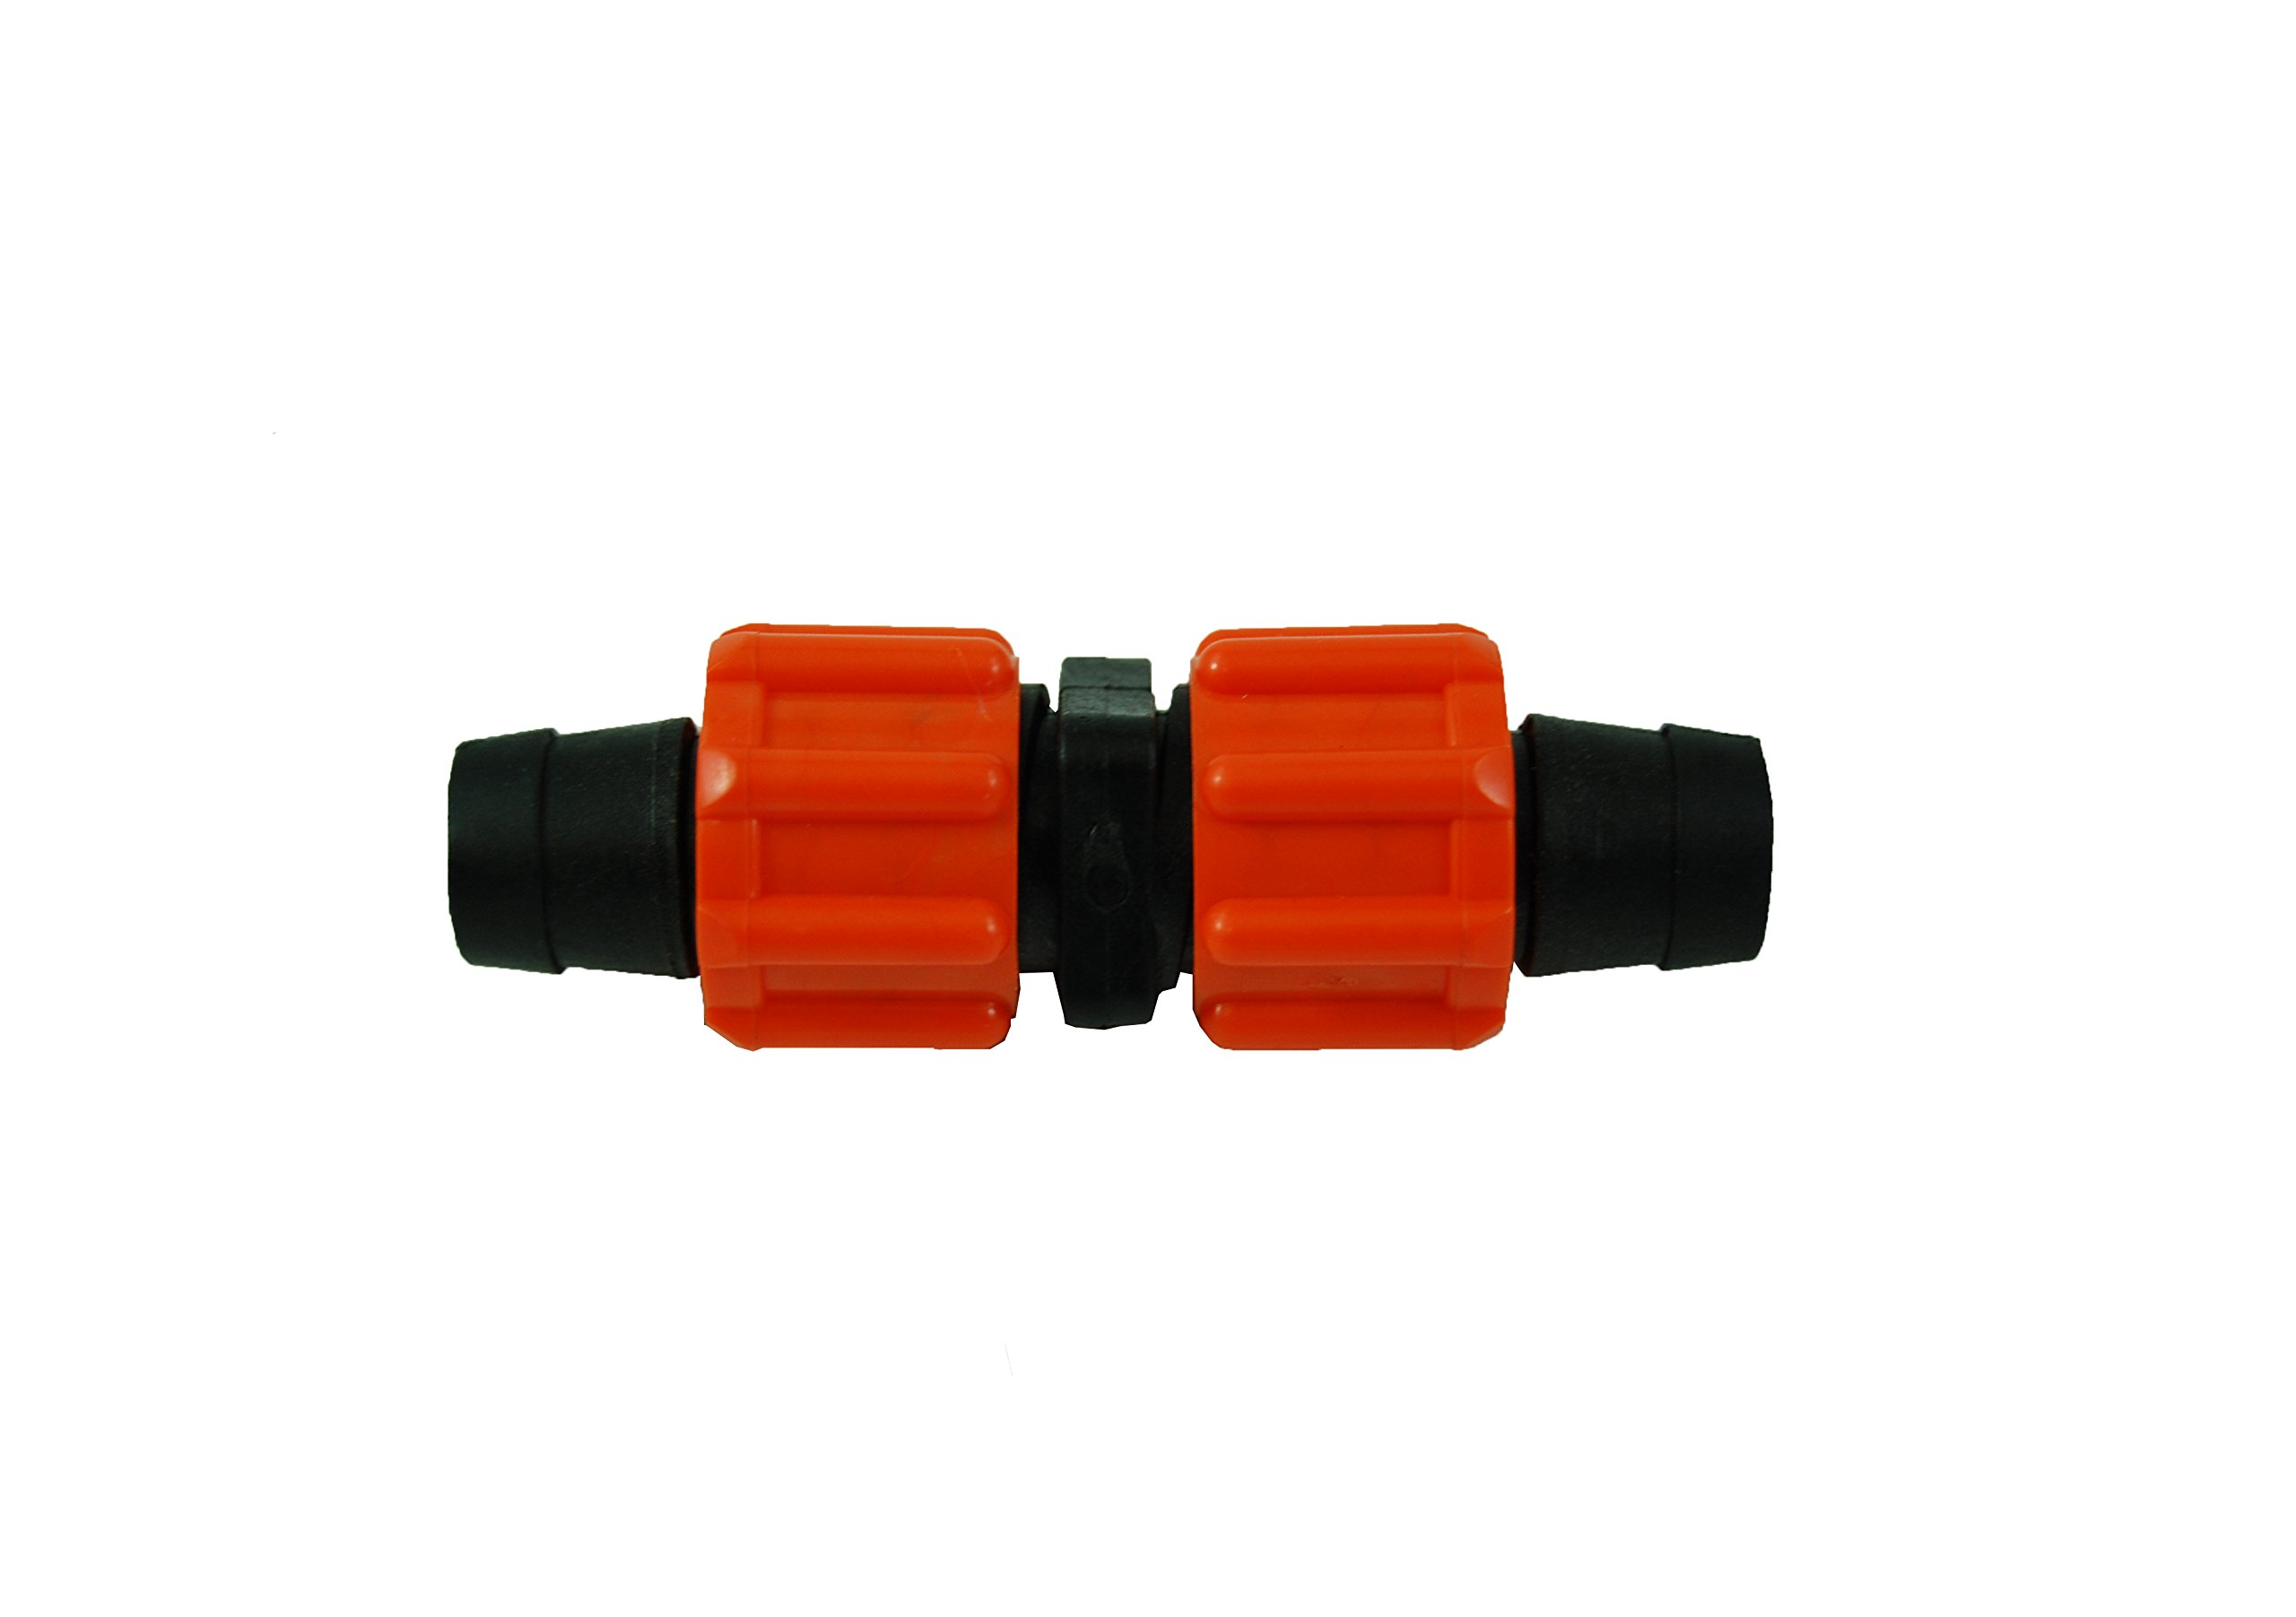 5/8'' Drip Tape Loc Coupling - Fittings - Irrigation - Orange Swivel - Gardening - QTY 50 by Growers Solution